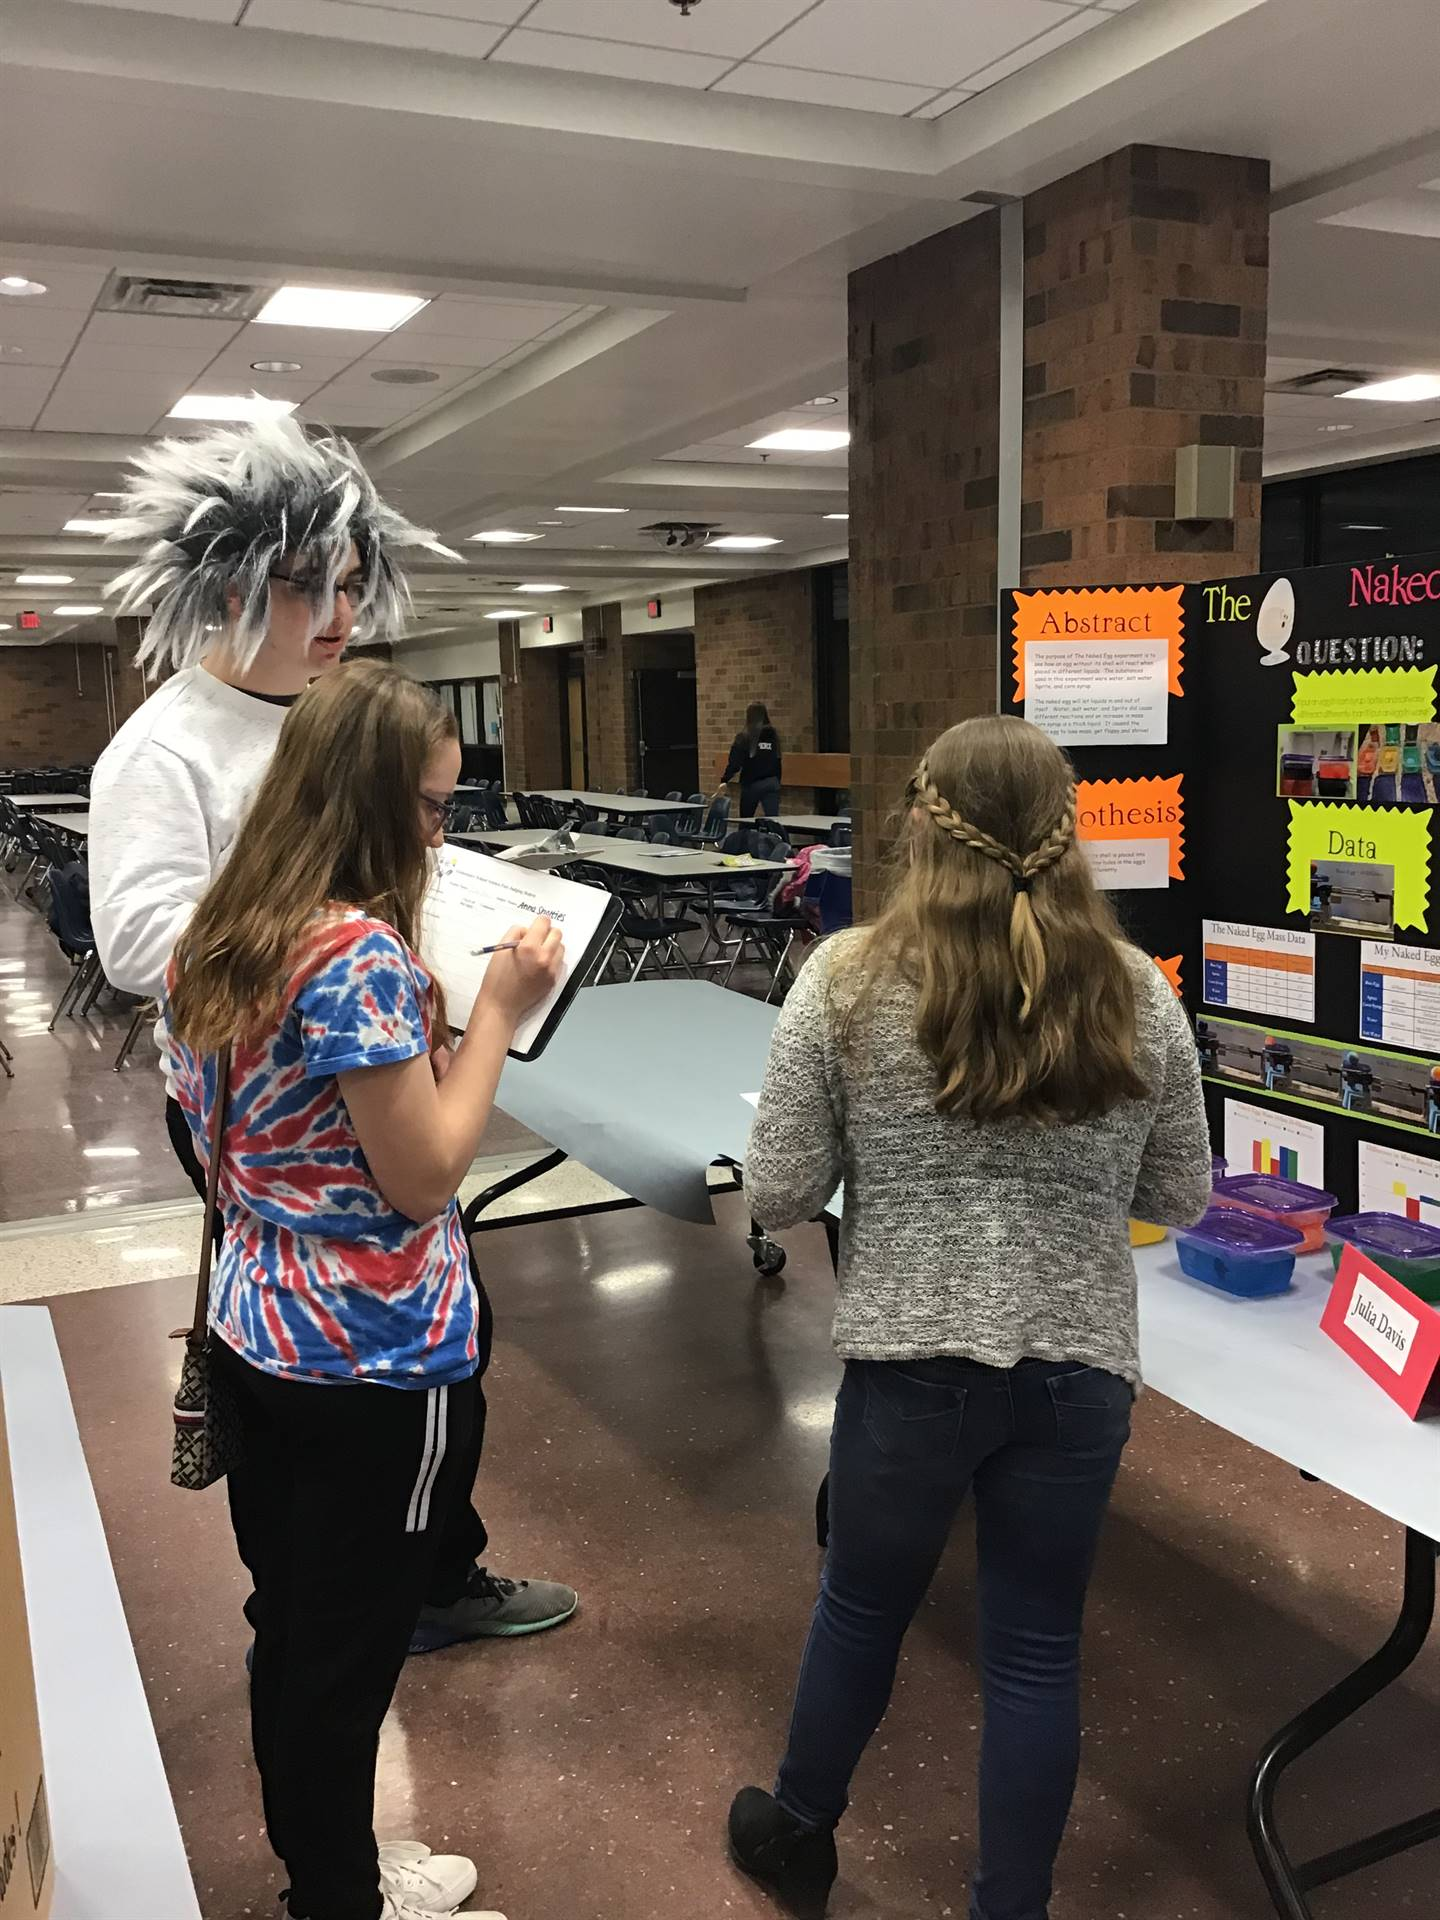 SAES/SAHS Gate science fair